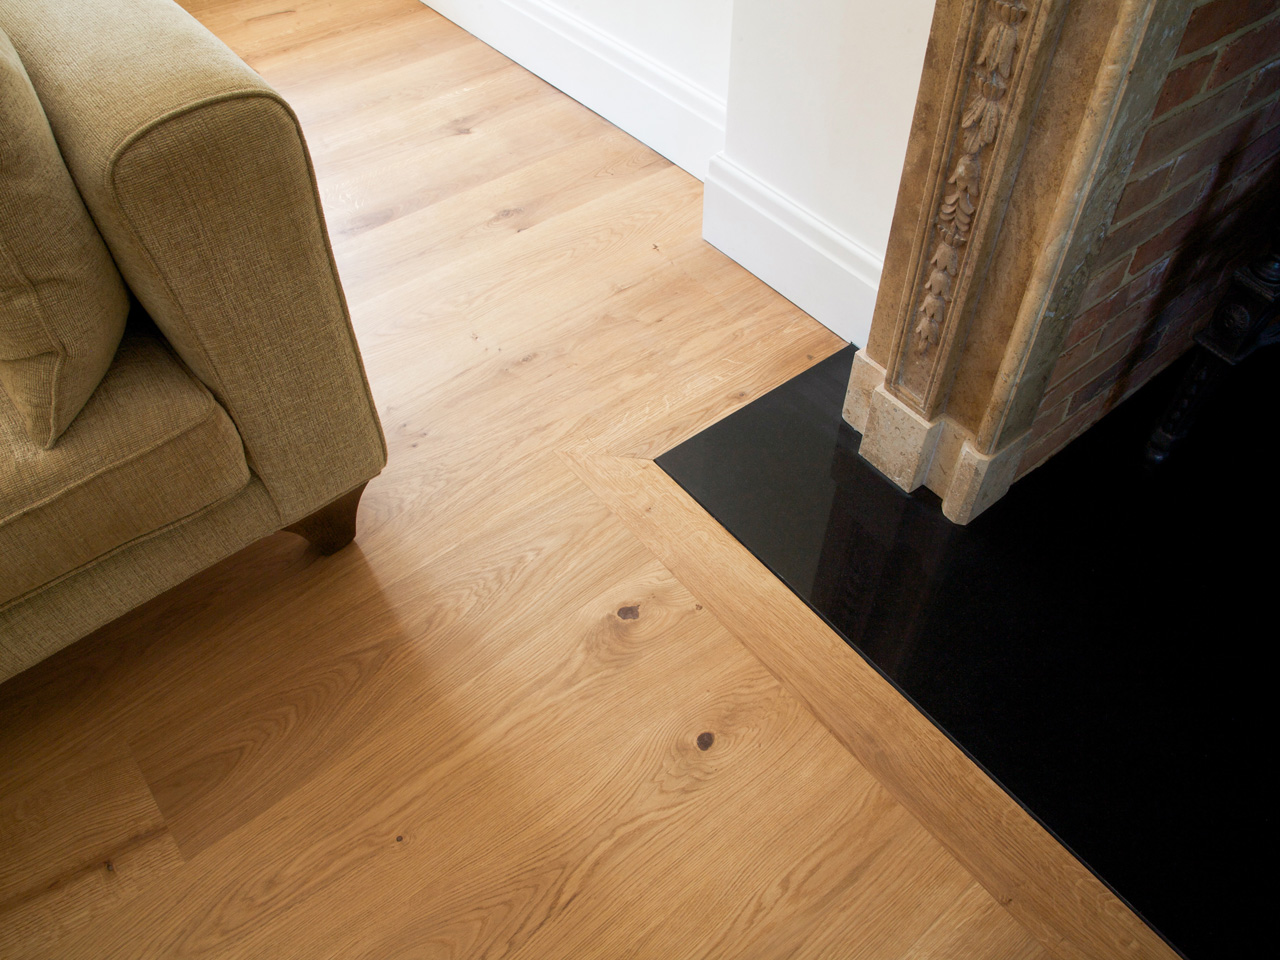 Wooden flooring, Fireplace detail